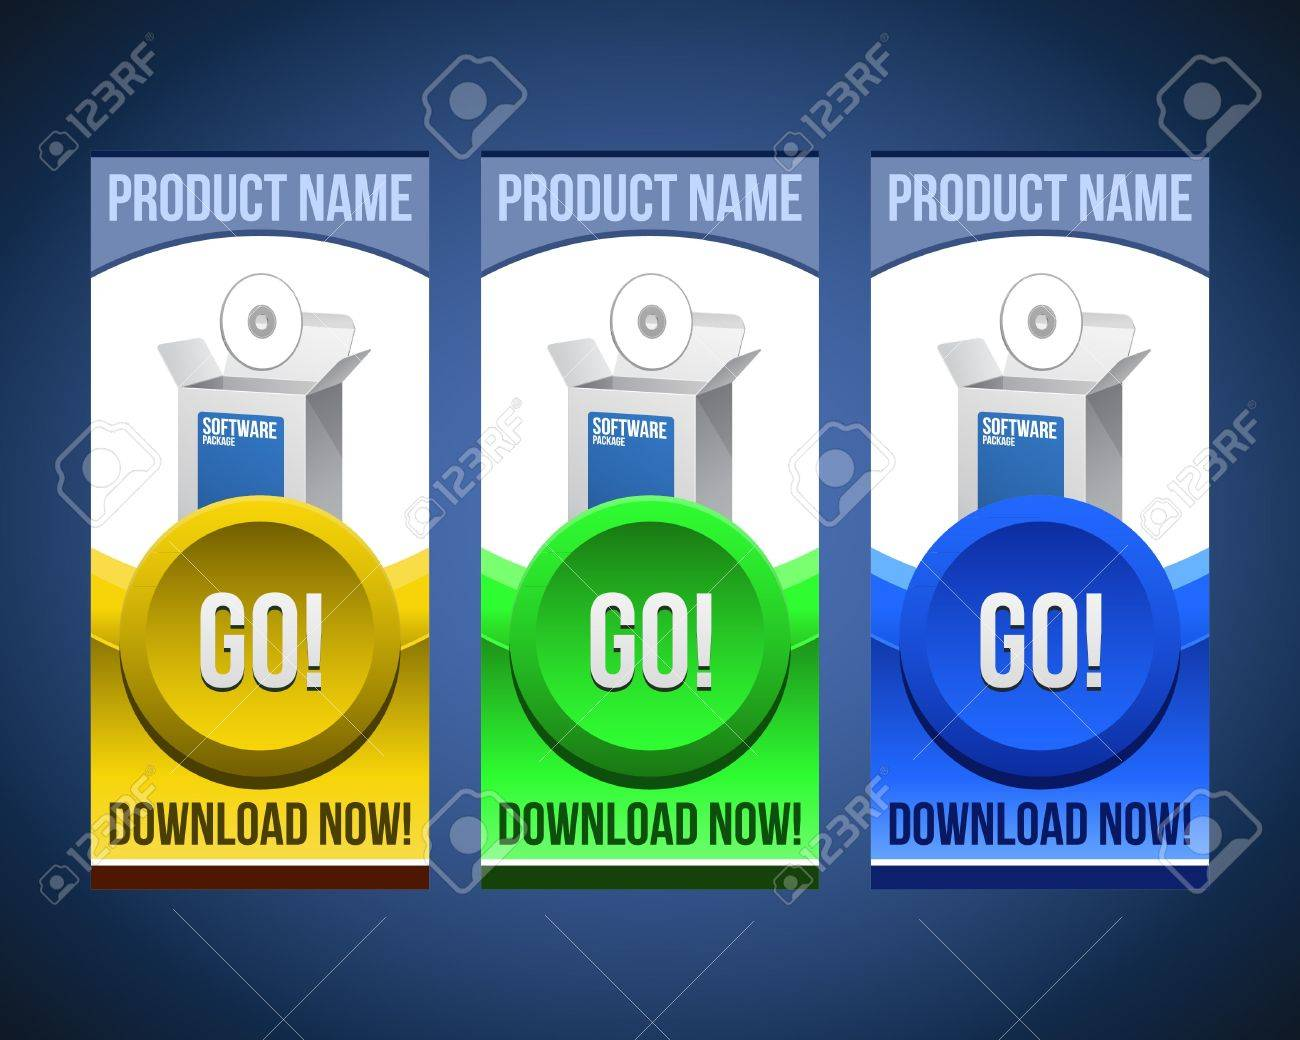 Colorful Software Banner Set With Big Button: Version 2 Stock Vector - 14461576